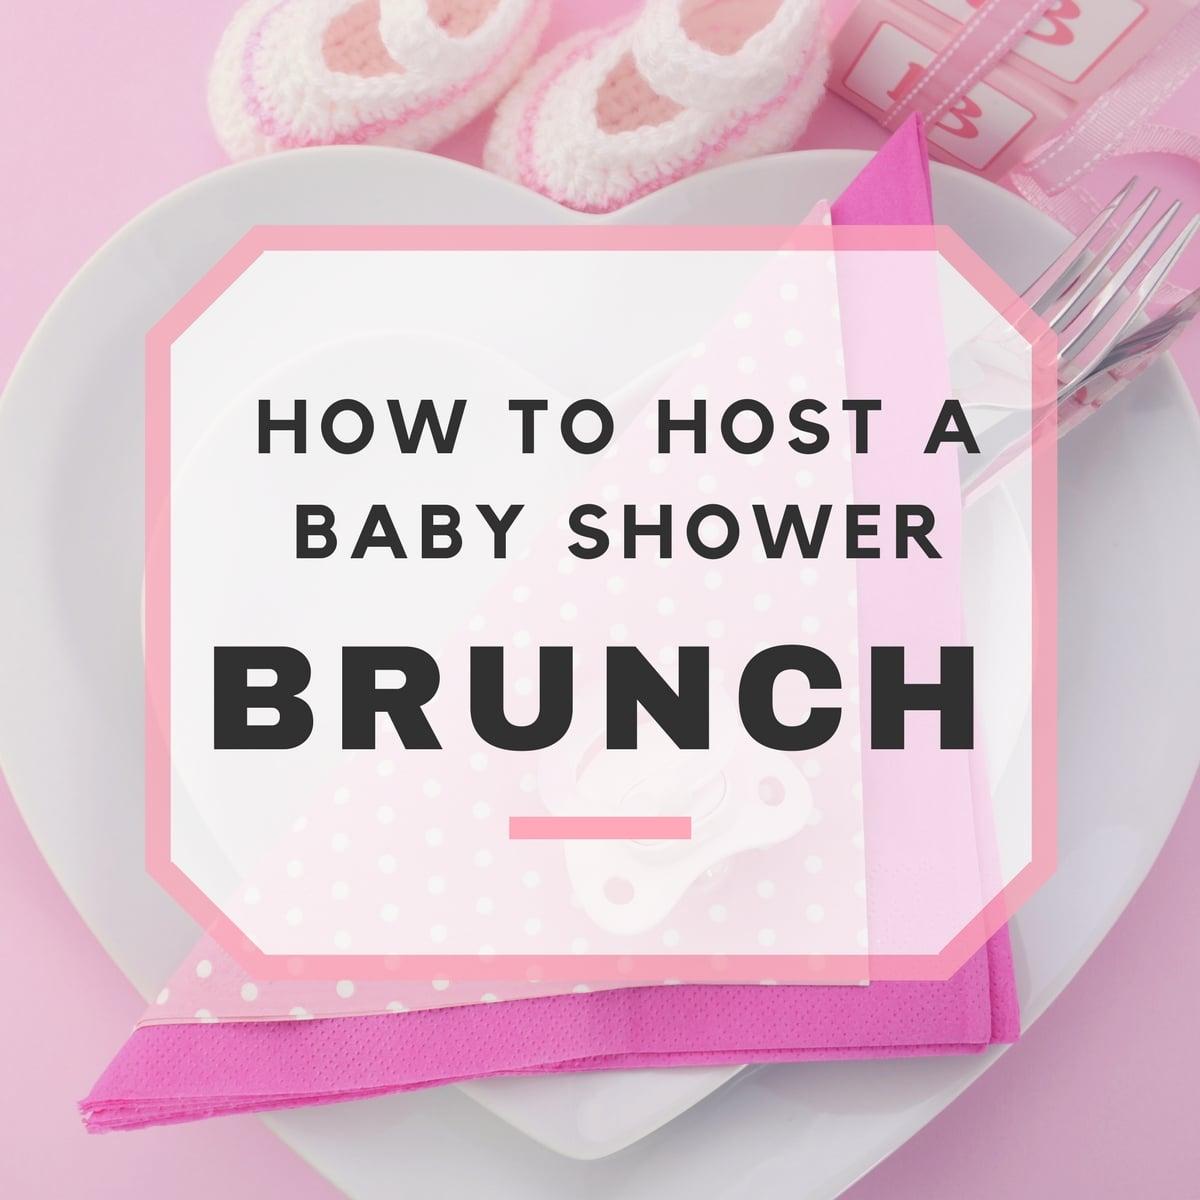 Baby shower food ideas for lunch